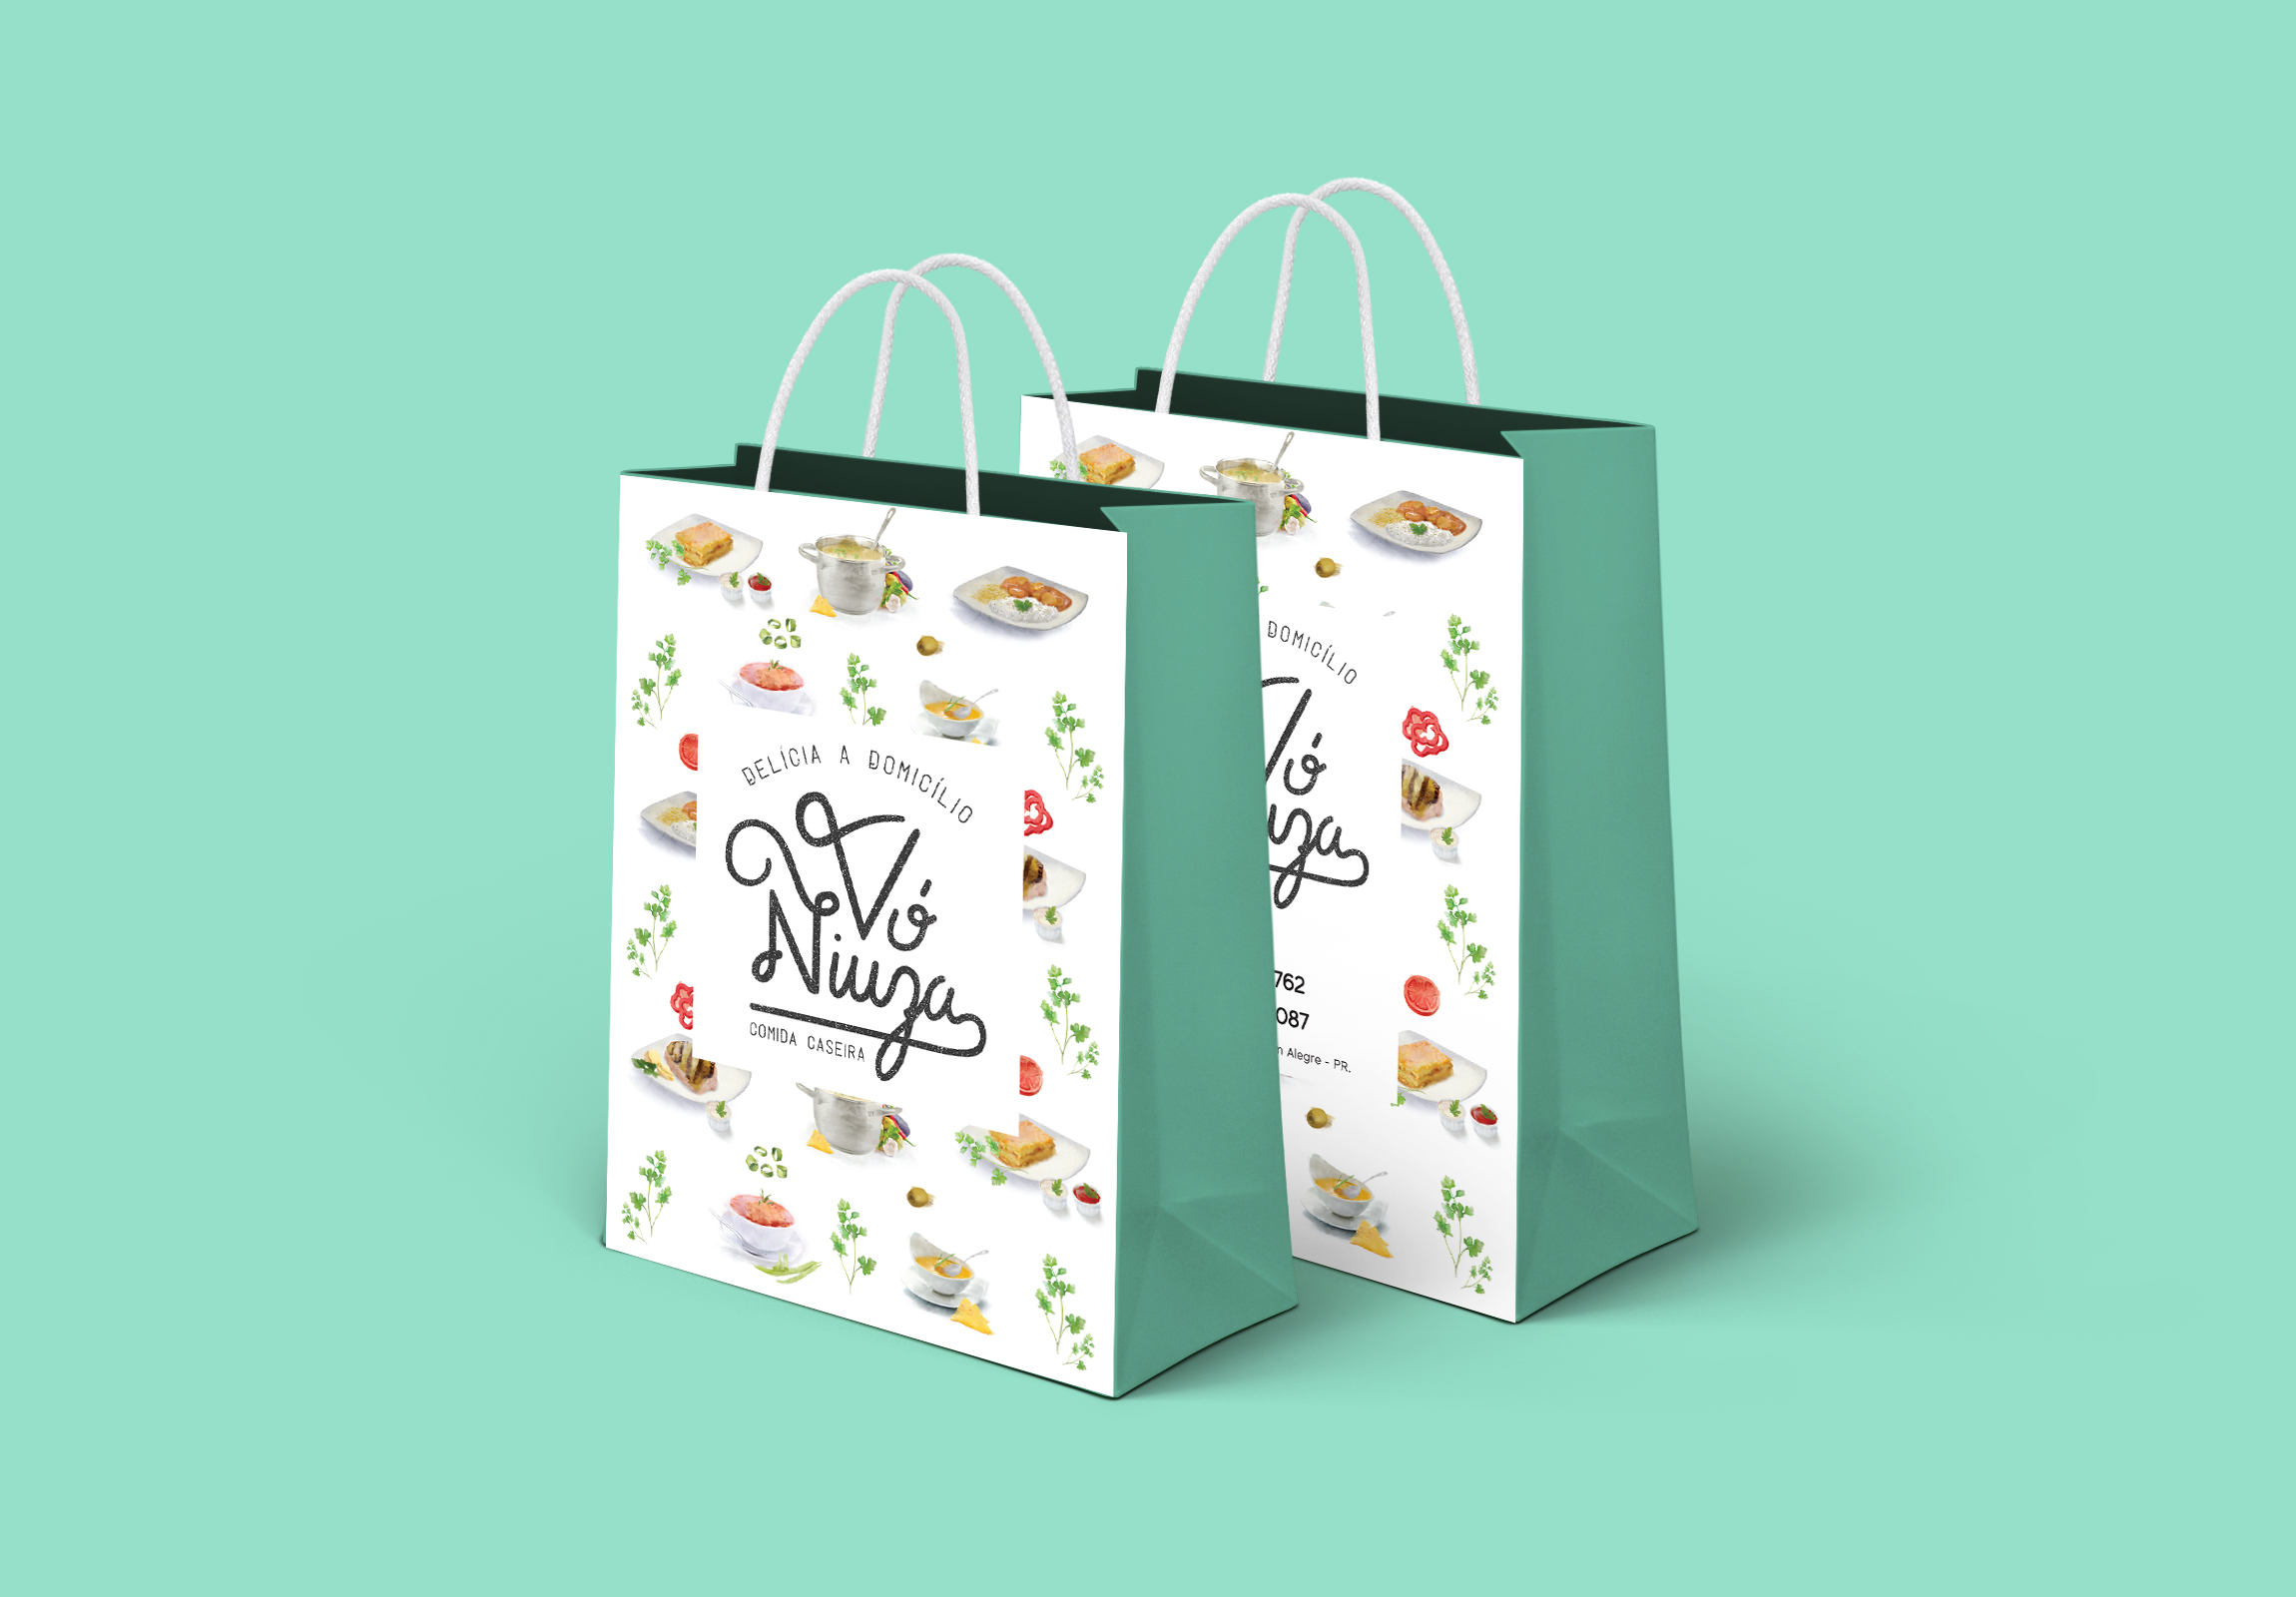 Inteligencia Marketing - VÓ NIUZA – NOVA IDENTIDADE - Shopping Bag PSD MockUp